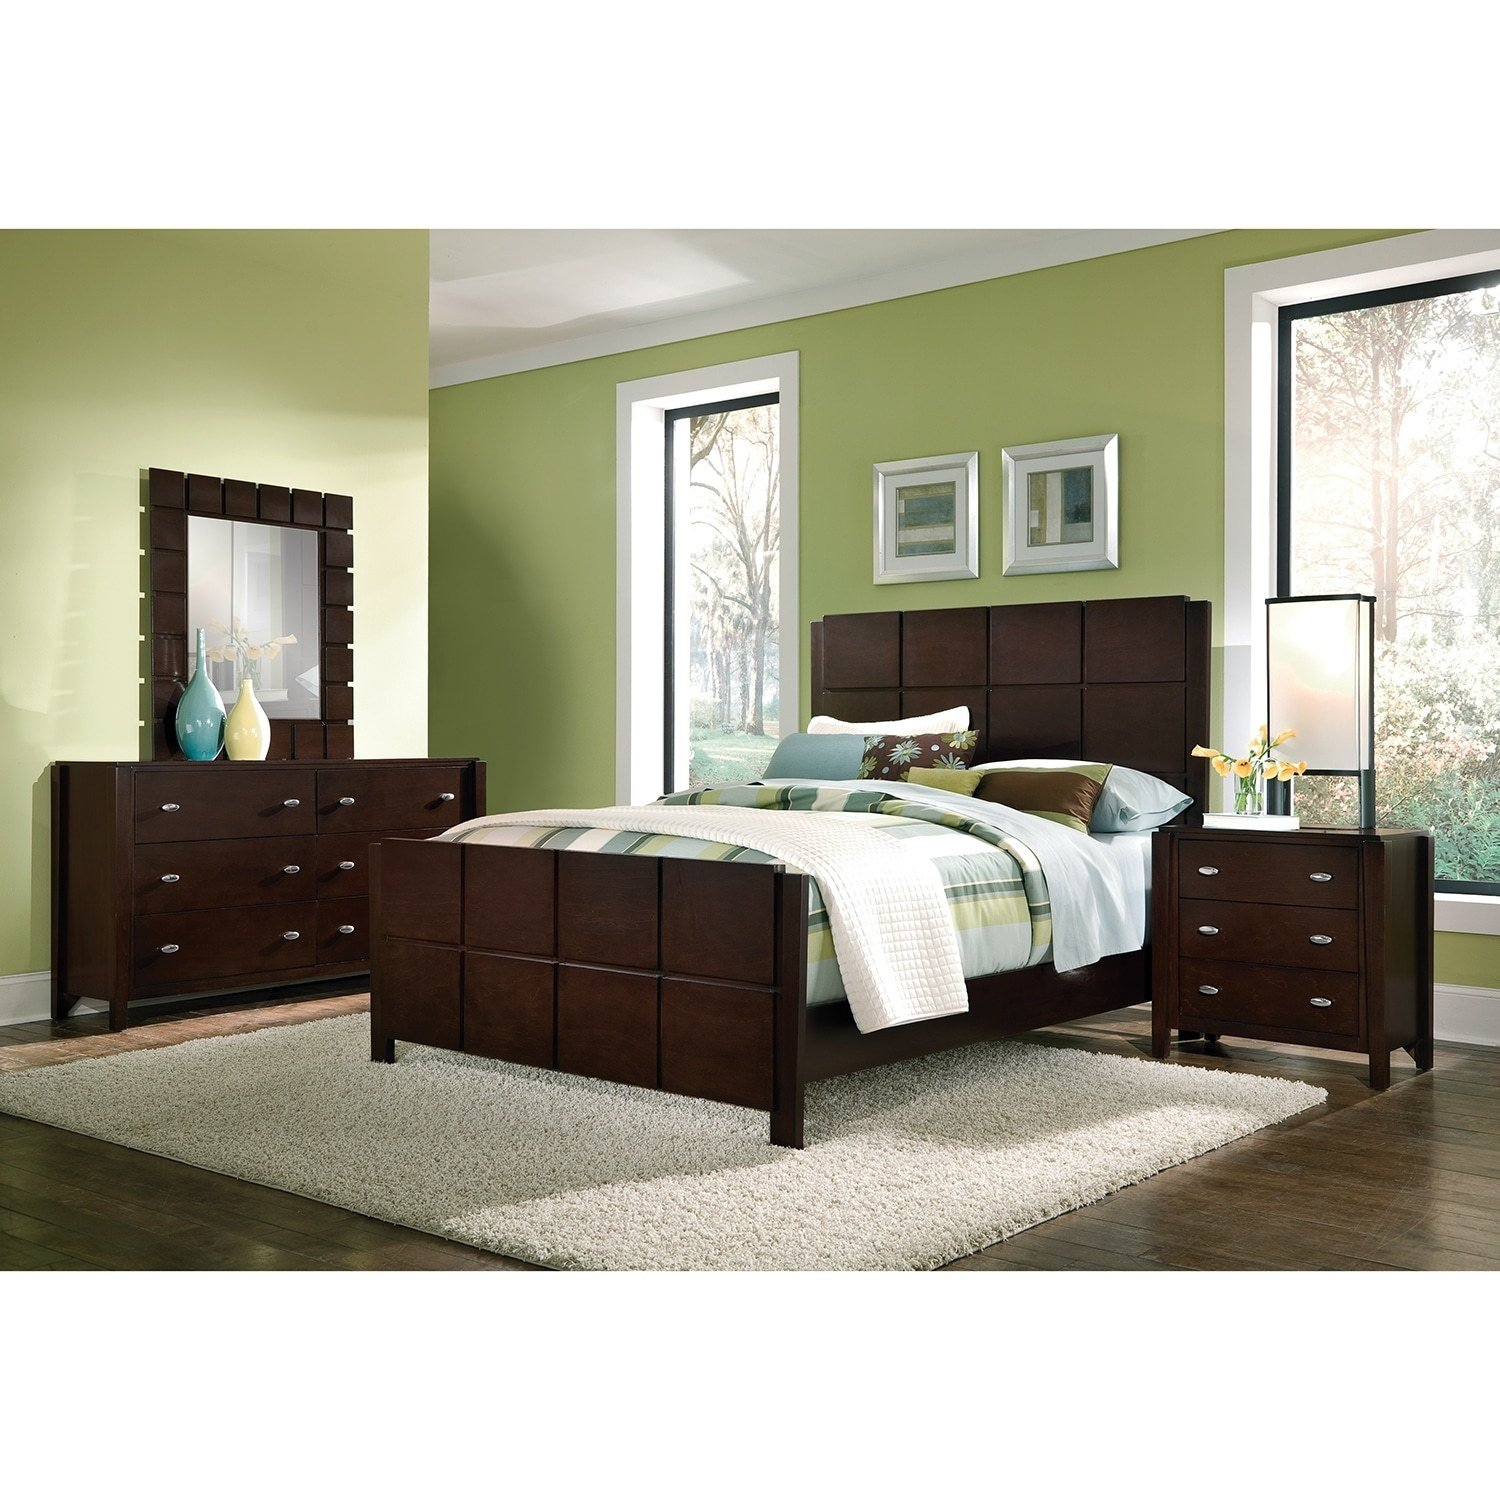 Best Mosaic 6 Piece Queen Bedroom Set Dark Brown Value City With Pictures